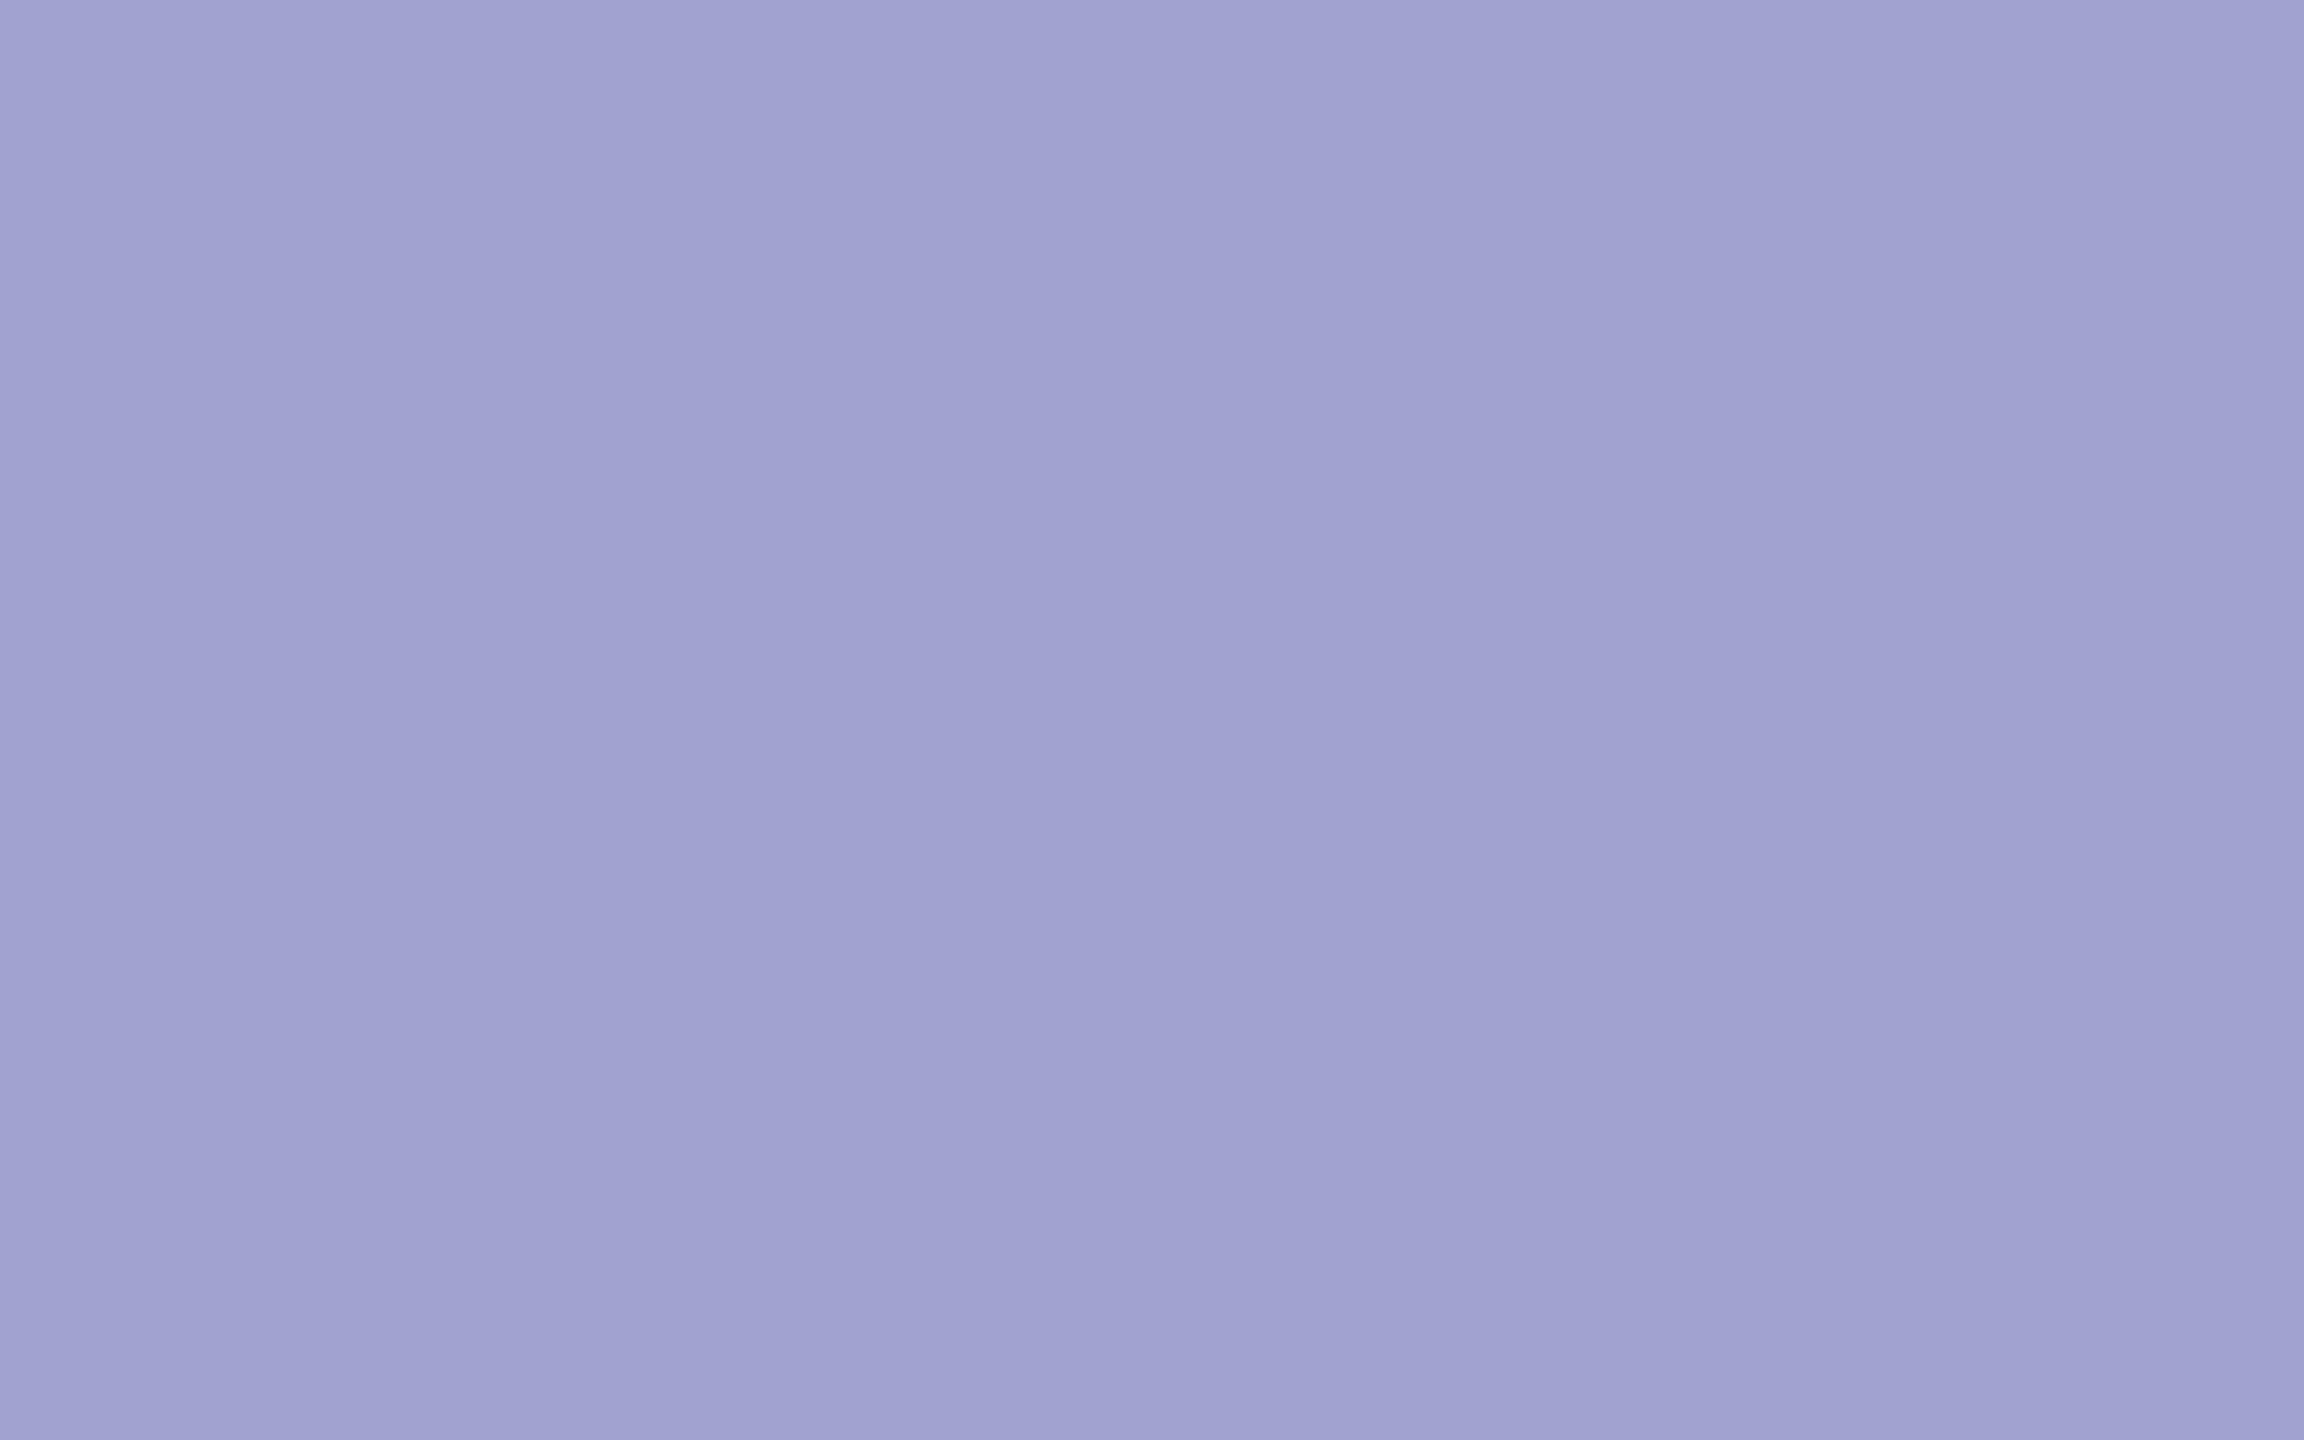 2304x1440 Blue Bell Solid Color Background